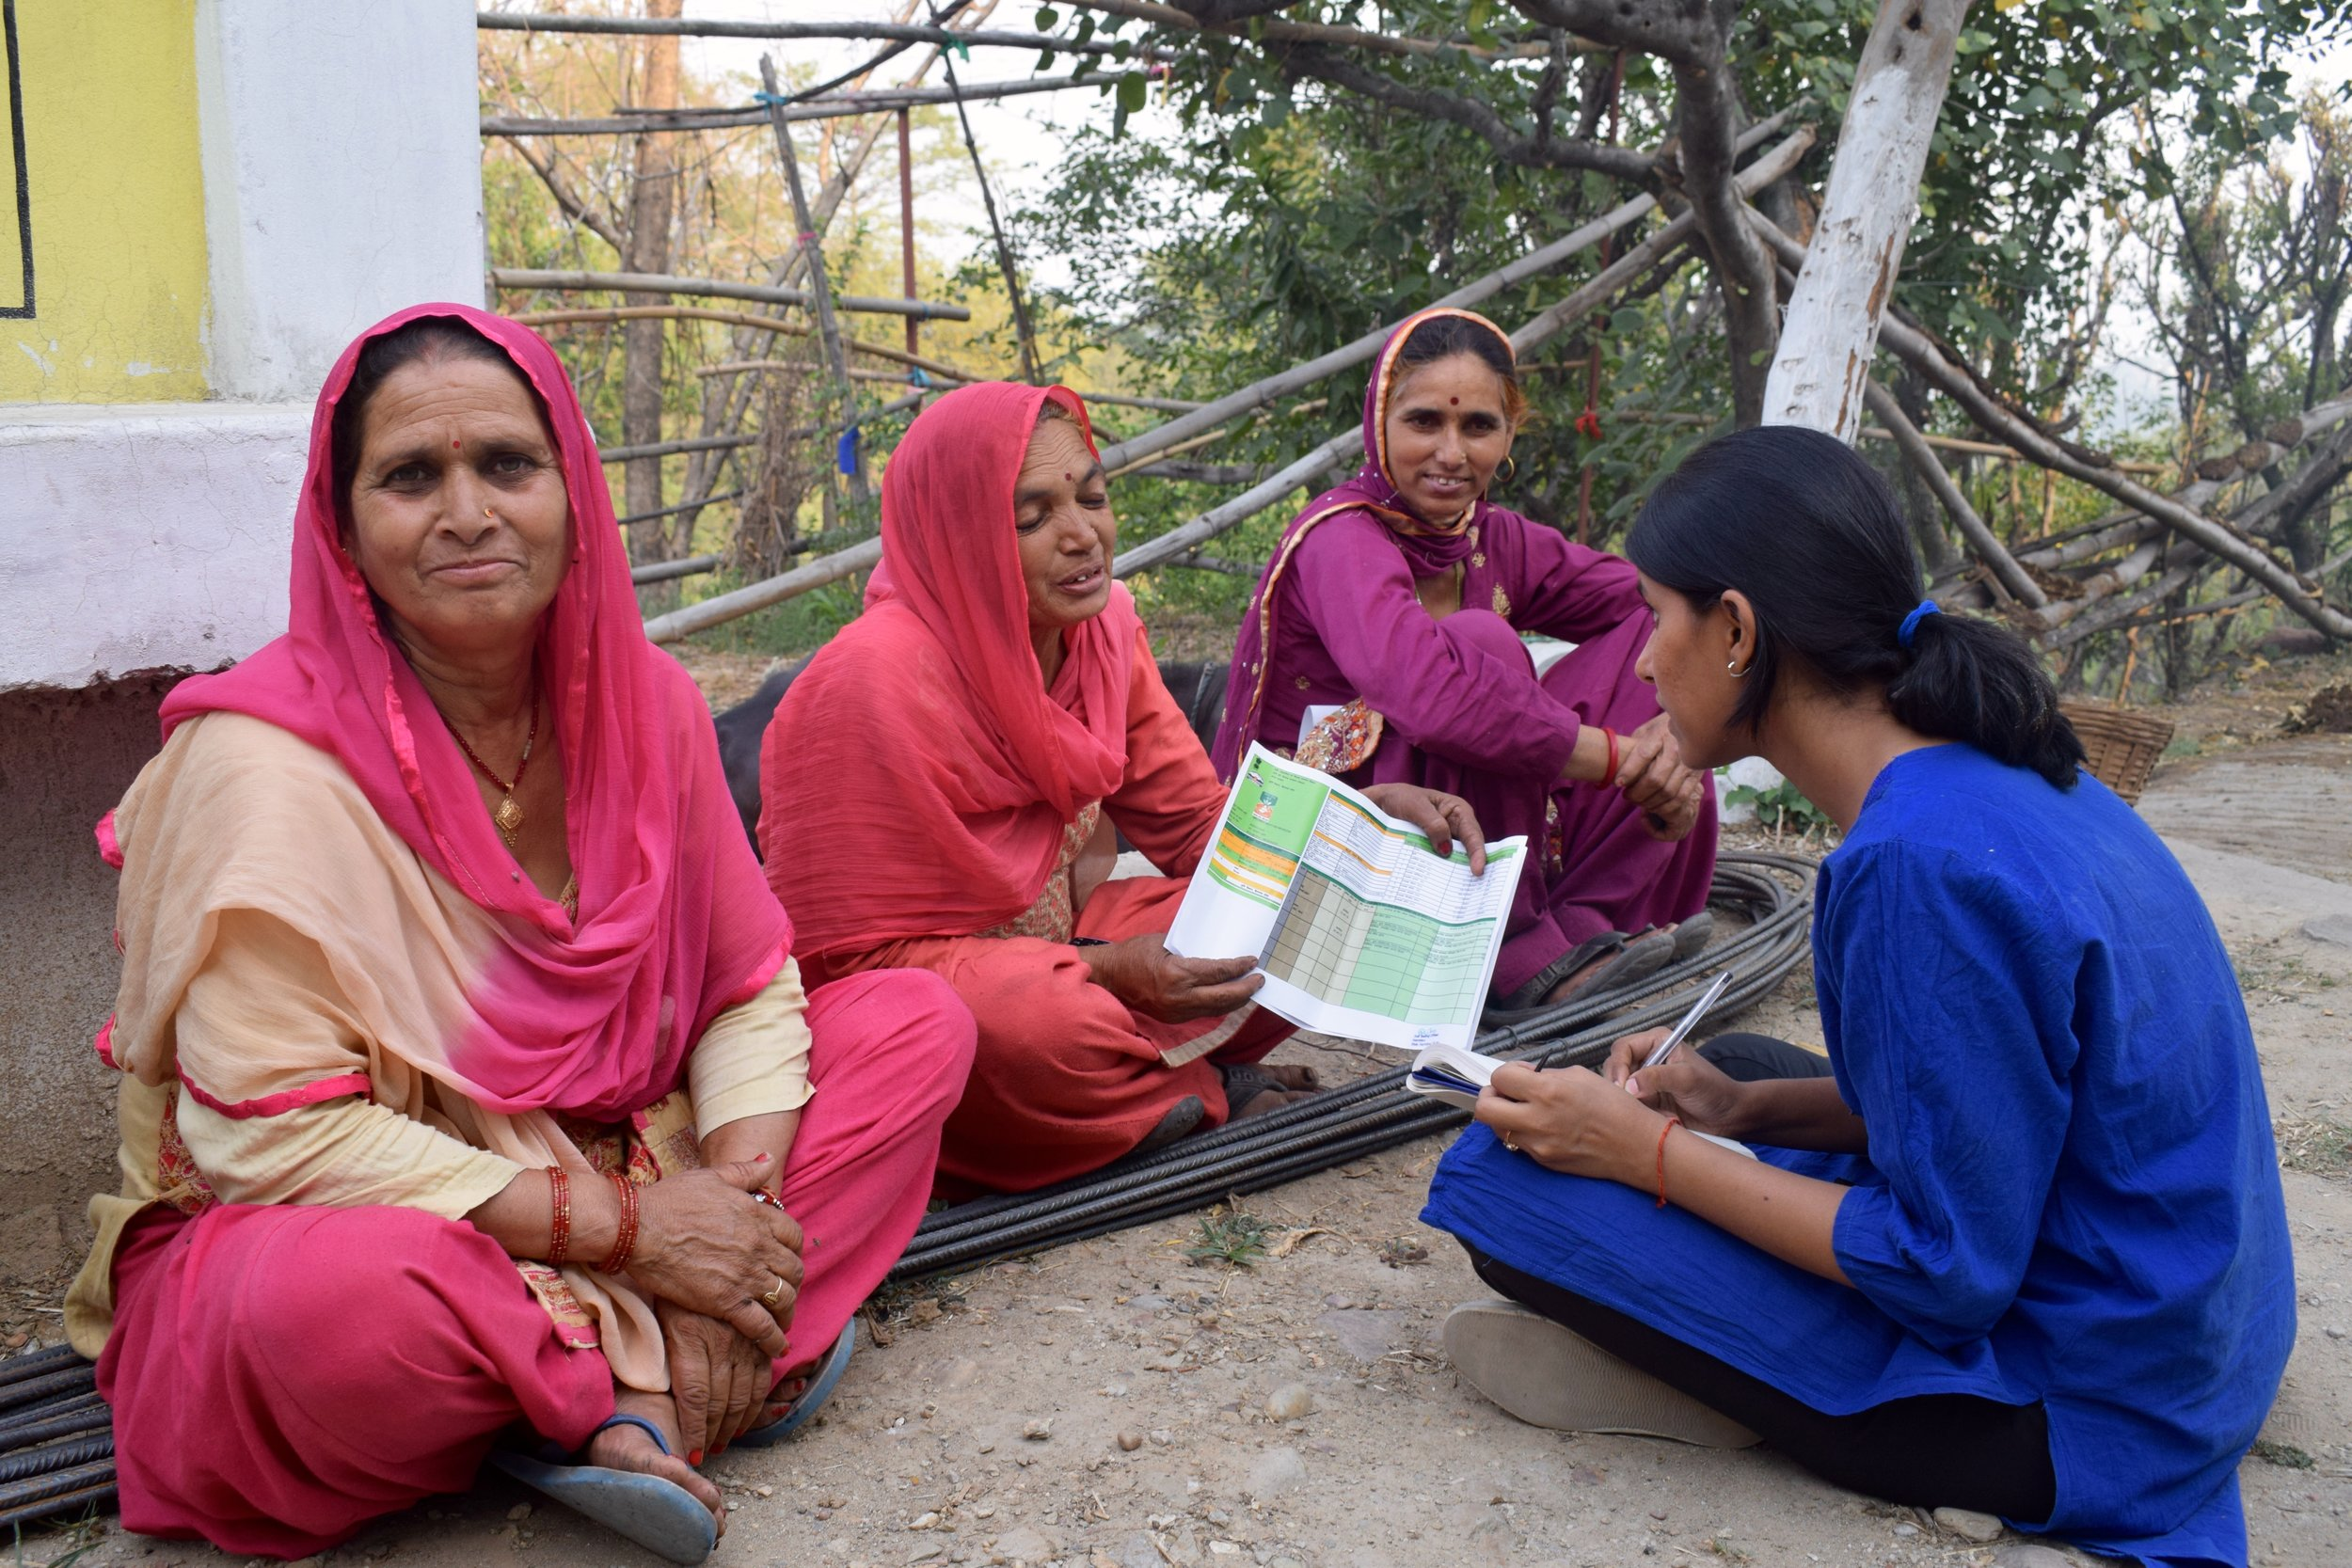 Female farmers share their views on India's Soil Health Card Scheme with IDinsight Manager Rupika Singh as a part of data collection for NITI Aayog's Aspirational Districts program.